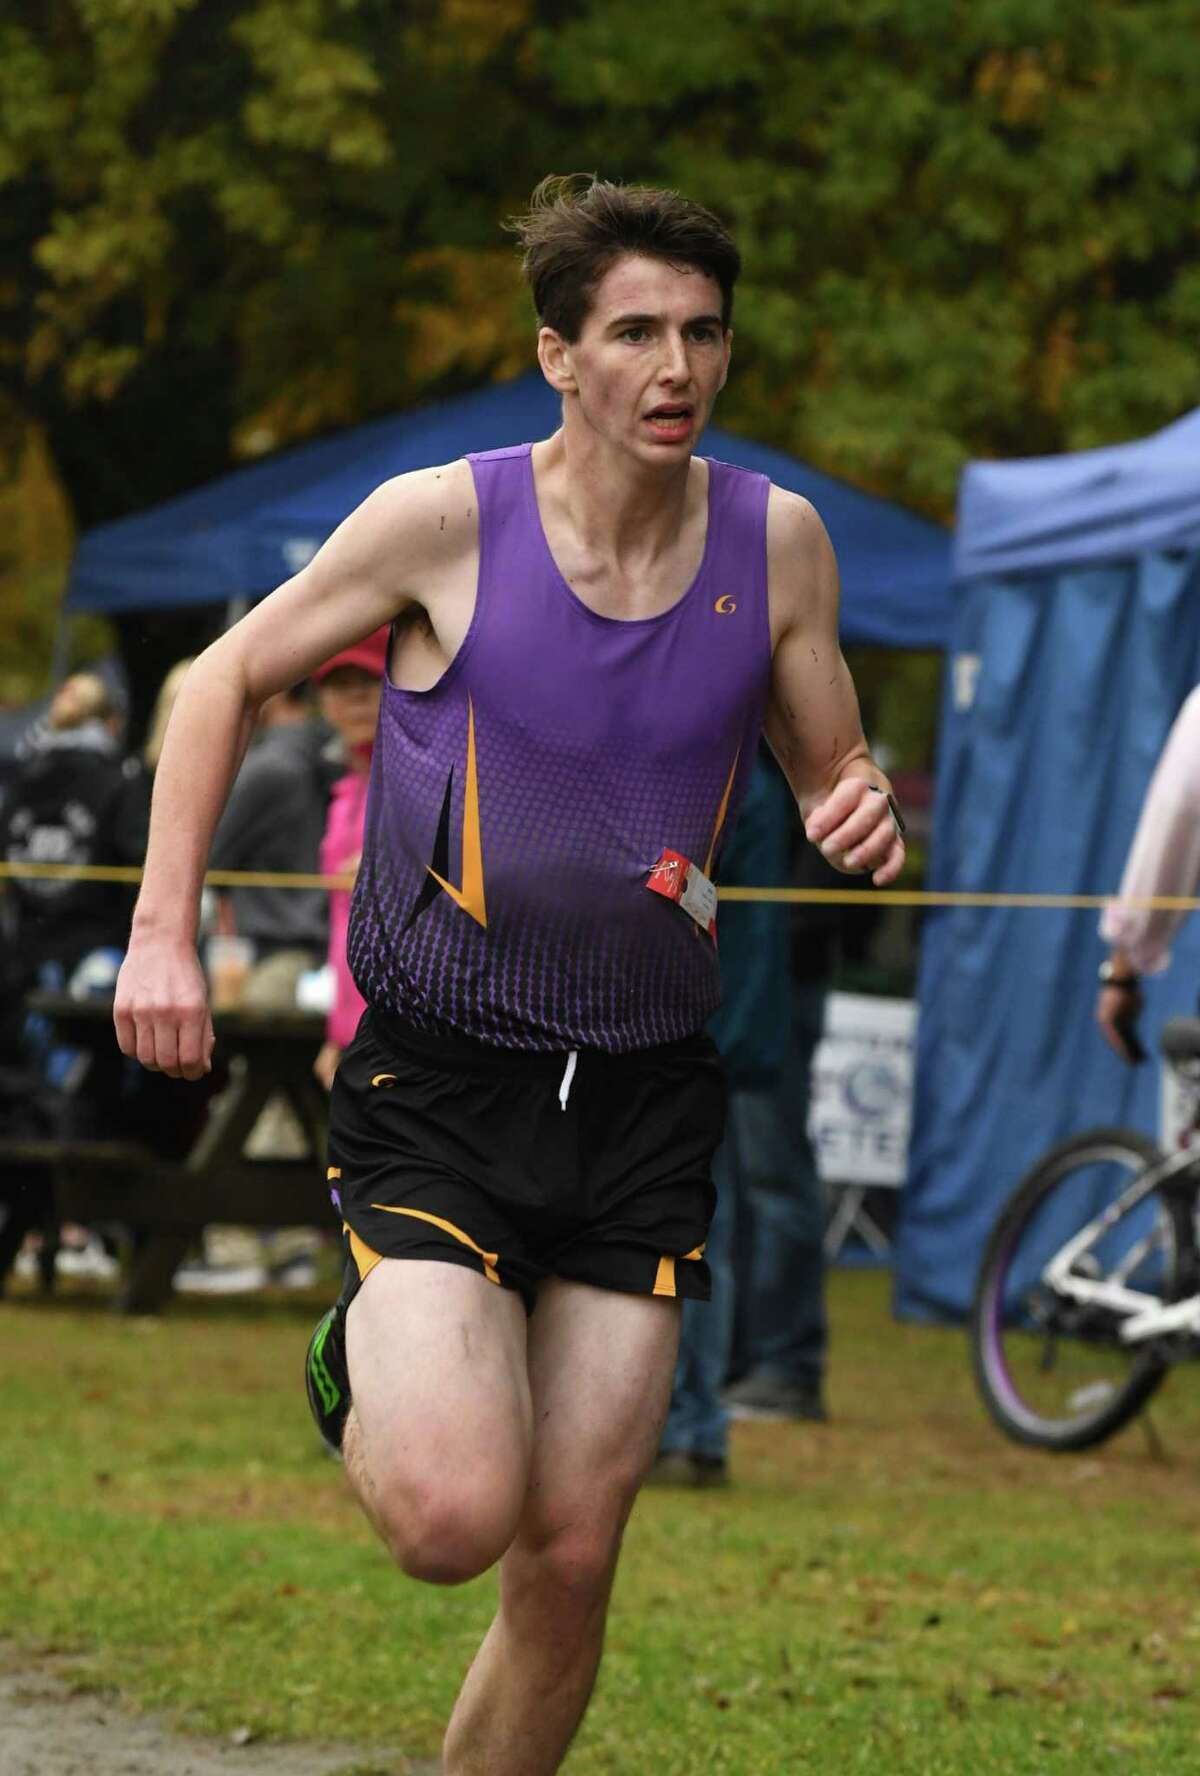 Section II Cross Country Championships Class D second place finisher, Andrew Drescher of Duanesburg heads to the finish line at Saratoga Spa State Park on Friday, Nov. 2, 2018, in Saratoga Springs, N.Y. (Will Waldron/Times Union)